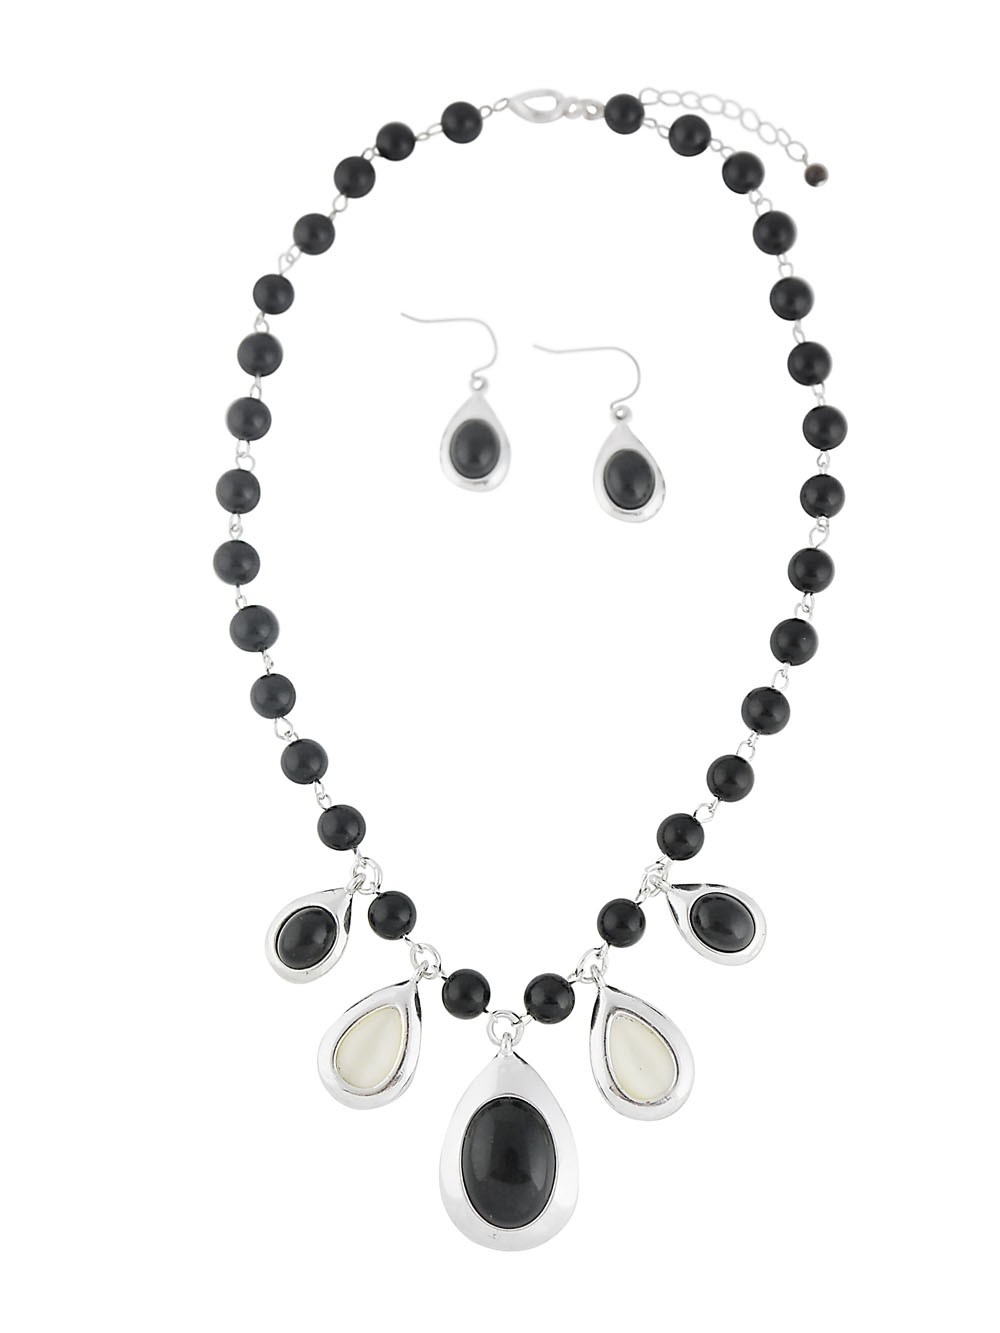 Black Teardrop Pendant Necklace and Earrings Set